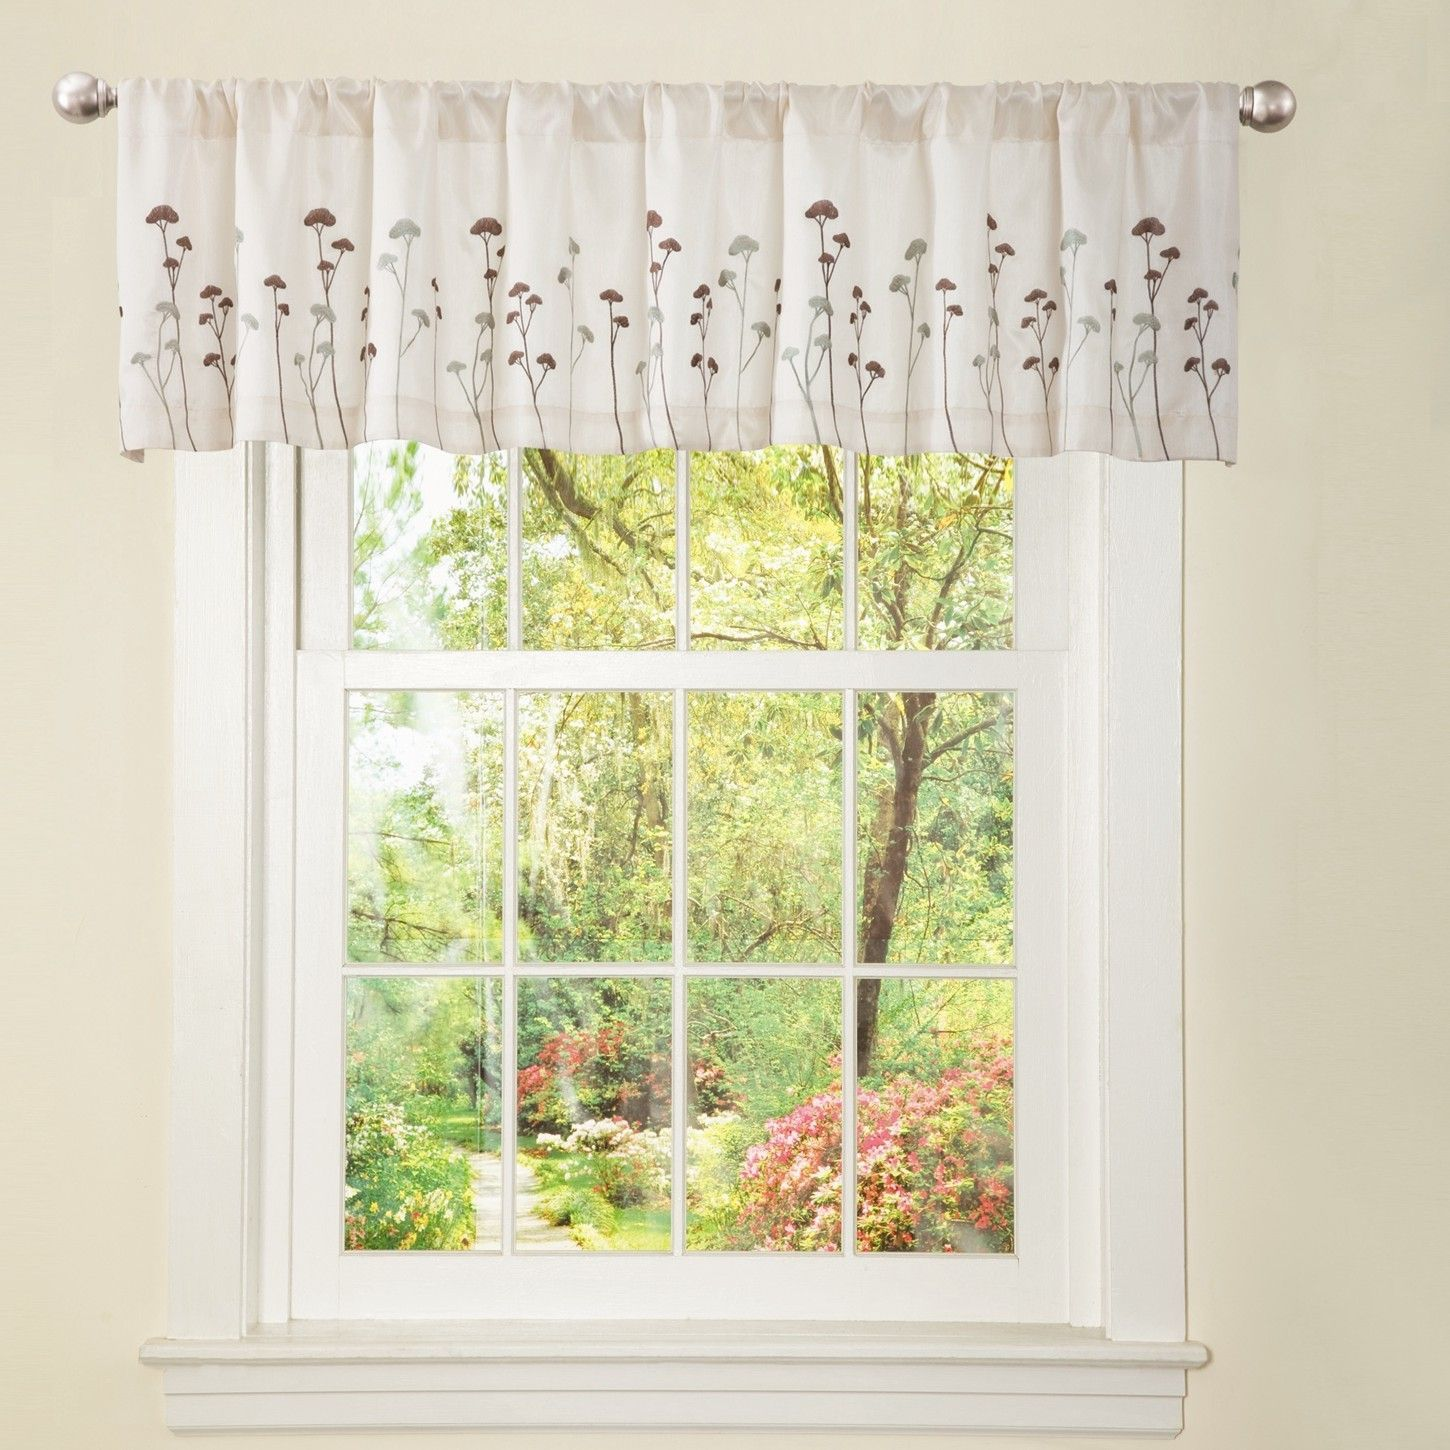 Eyebrow window coverings  dawn valance  products  pinterest  products